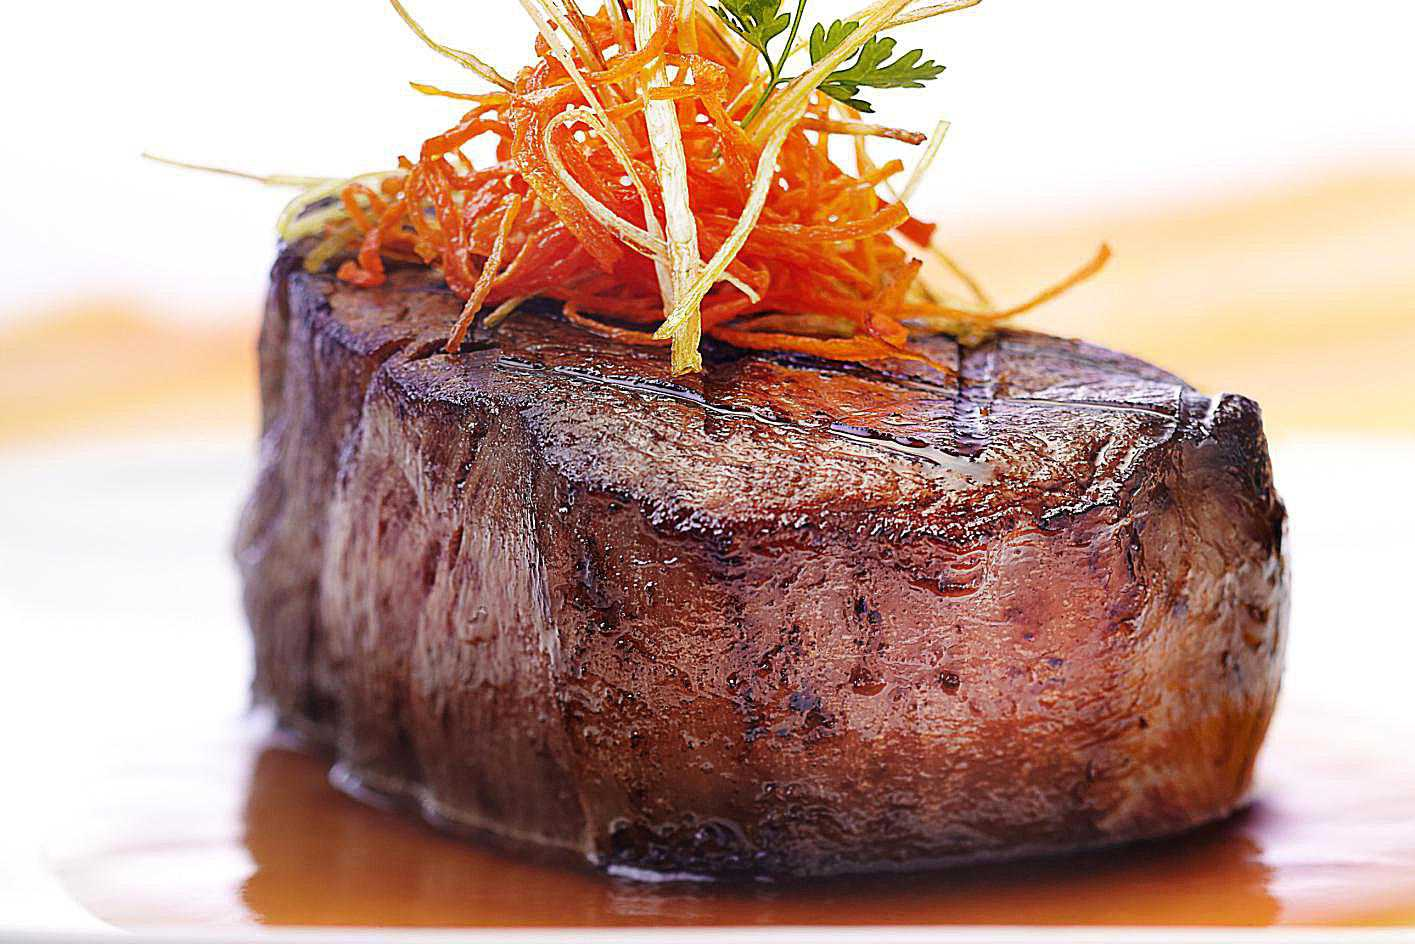 Herb-Crusted Filet Mignon